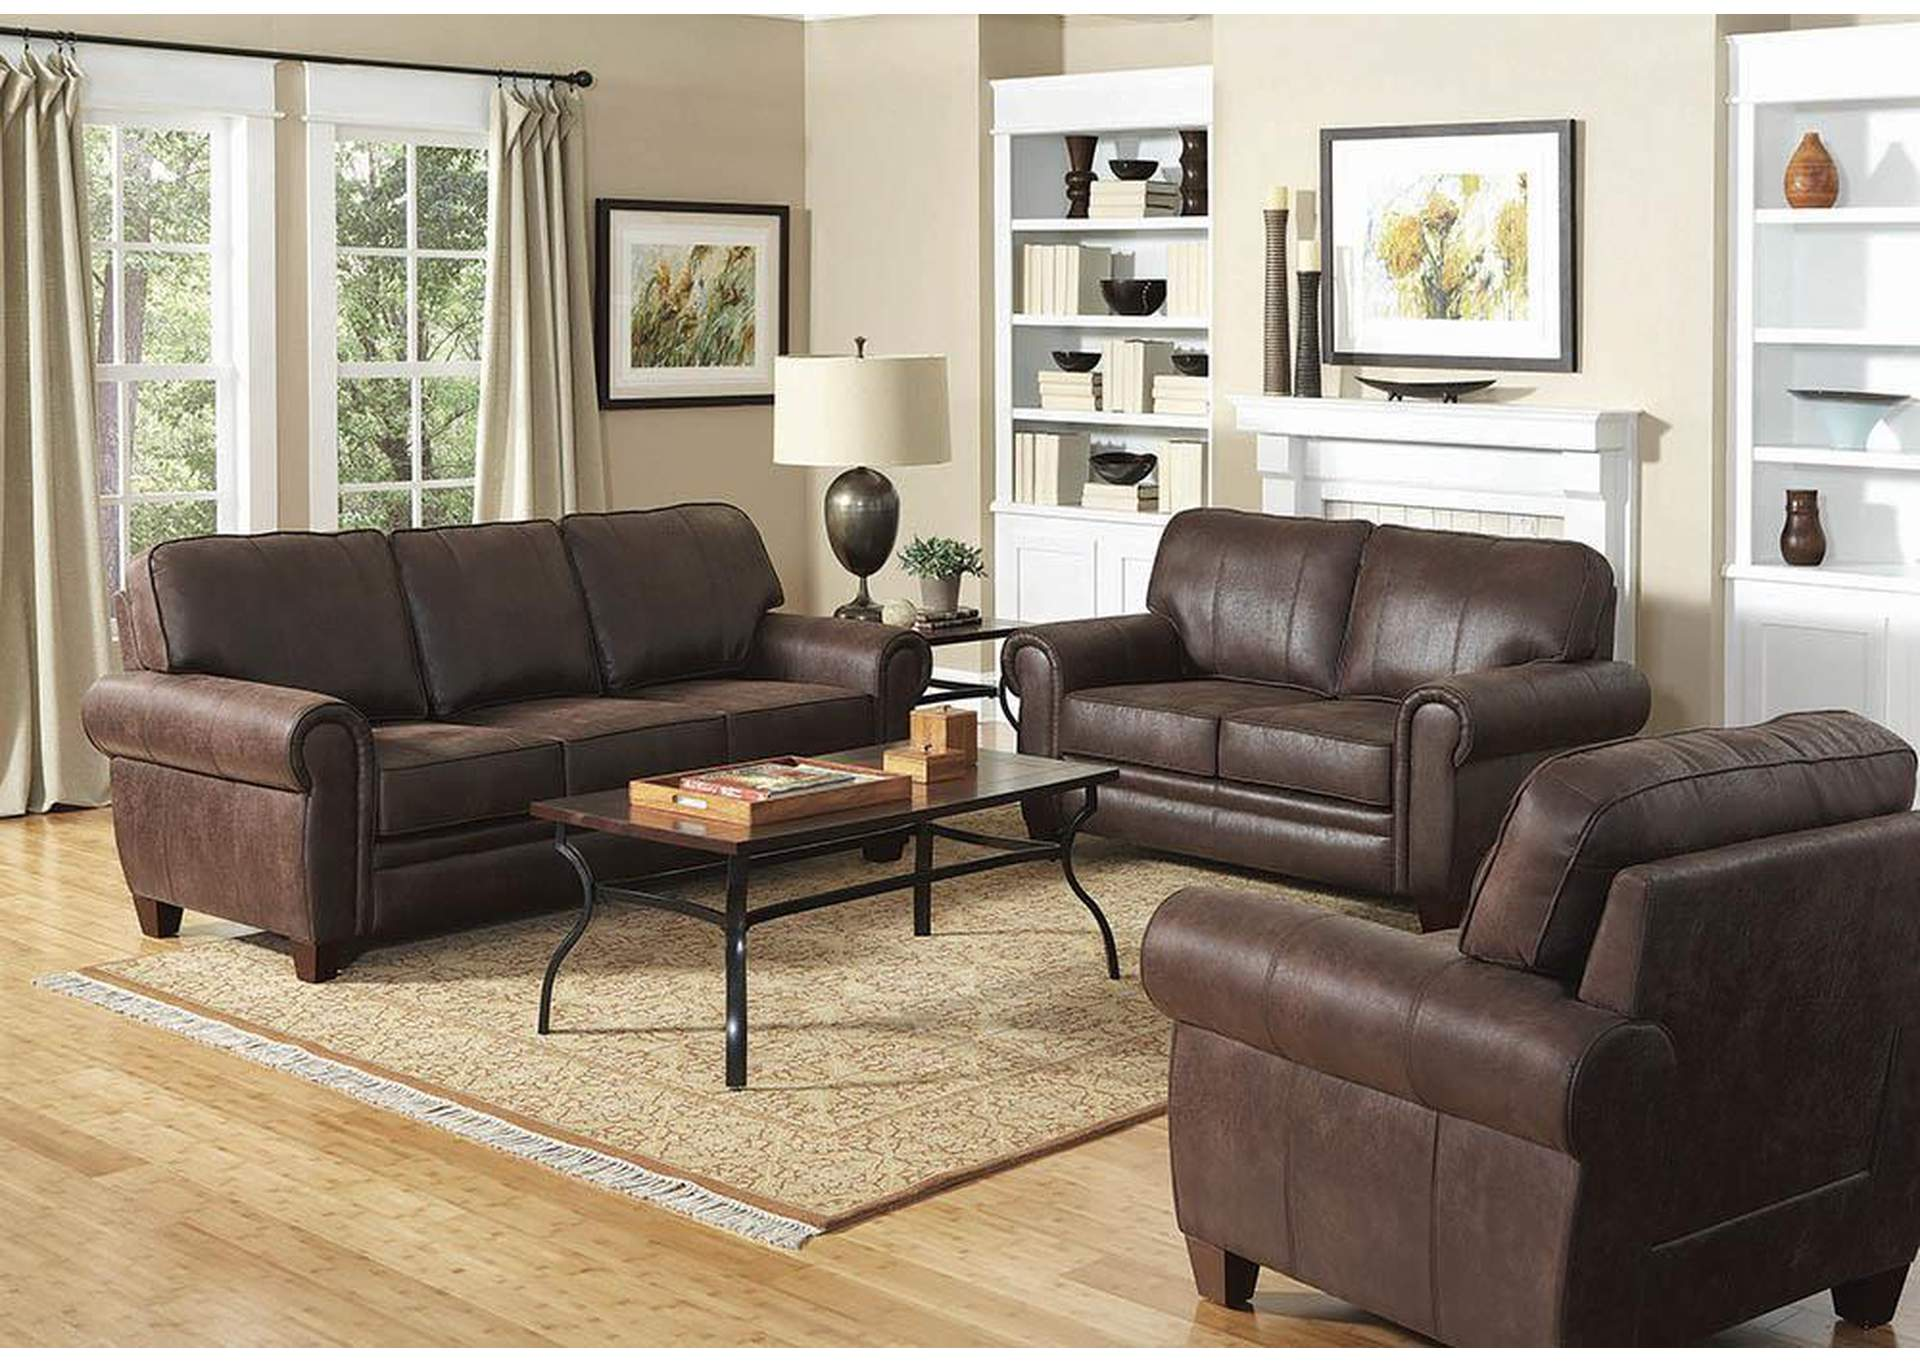 Overstock Furniture - Langley Park, Catonsville ...